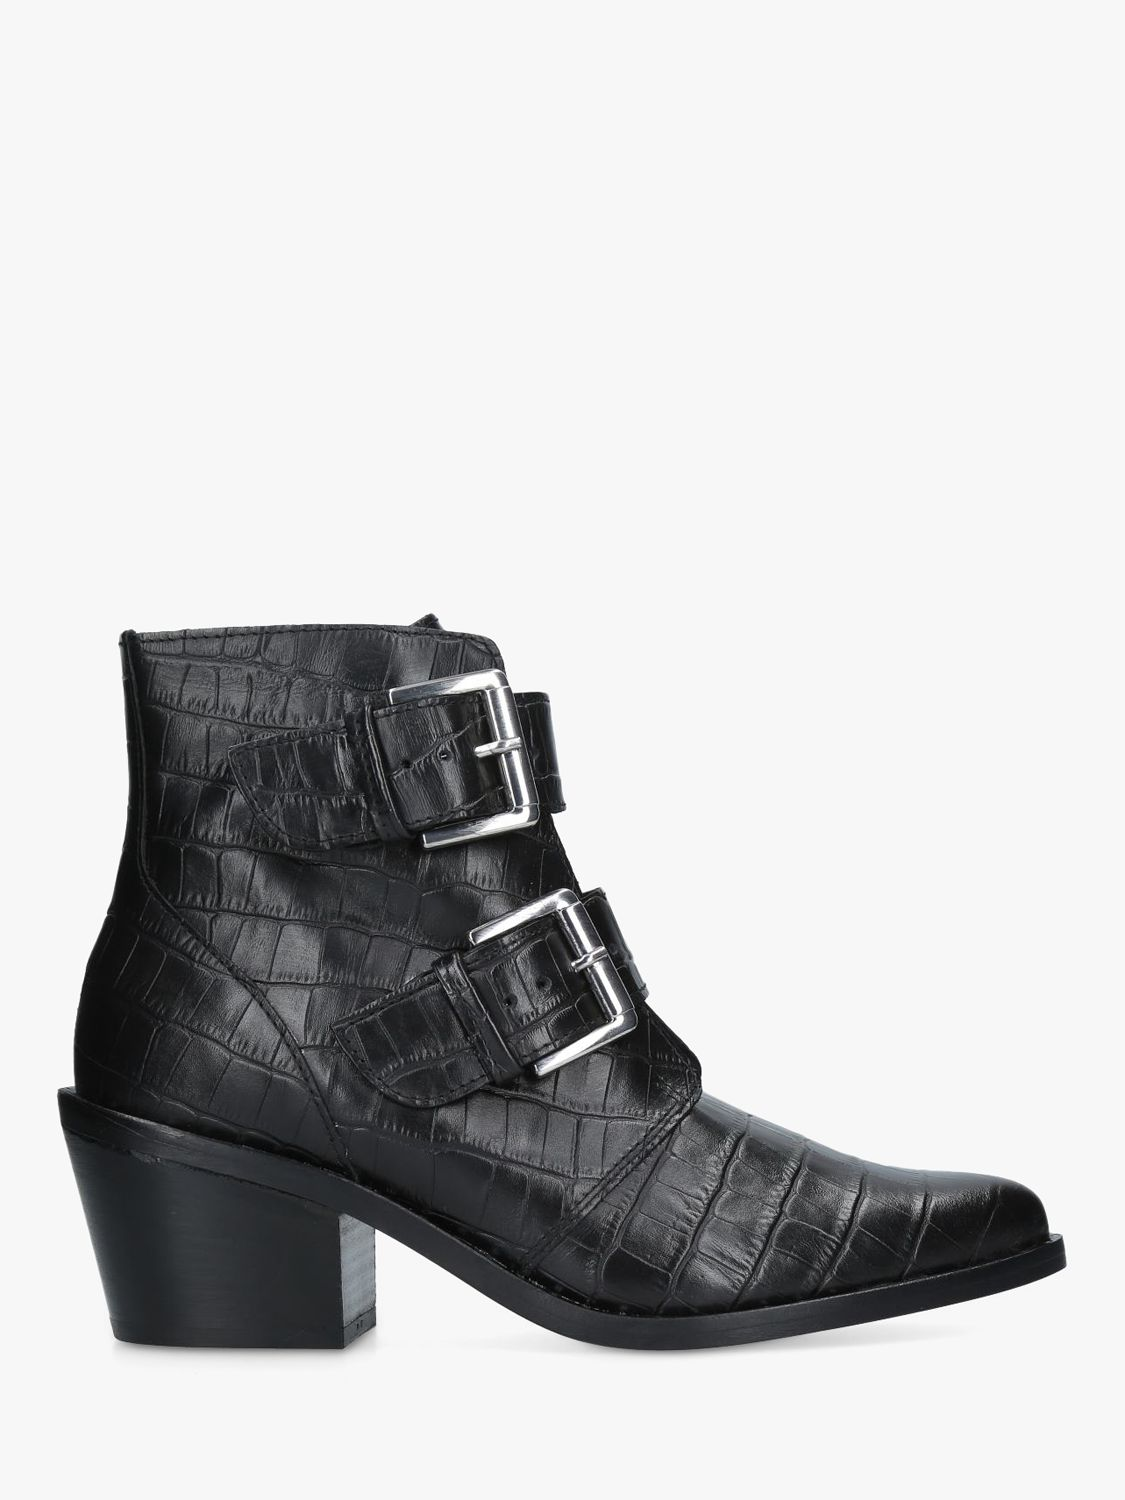 0739fbd3091c0 Kurt Geiger London Denny Double Buckle Ankle Boots, Black Leather at John  Lewis & Partners